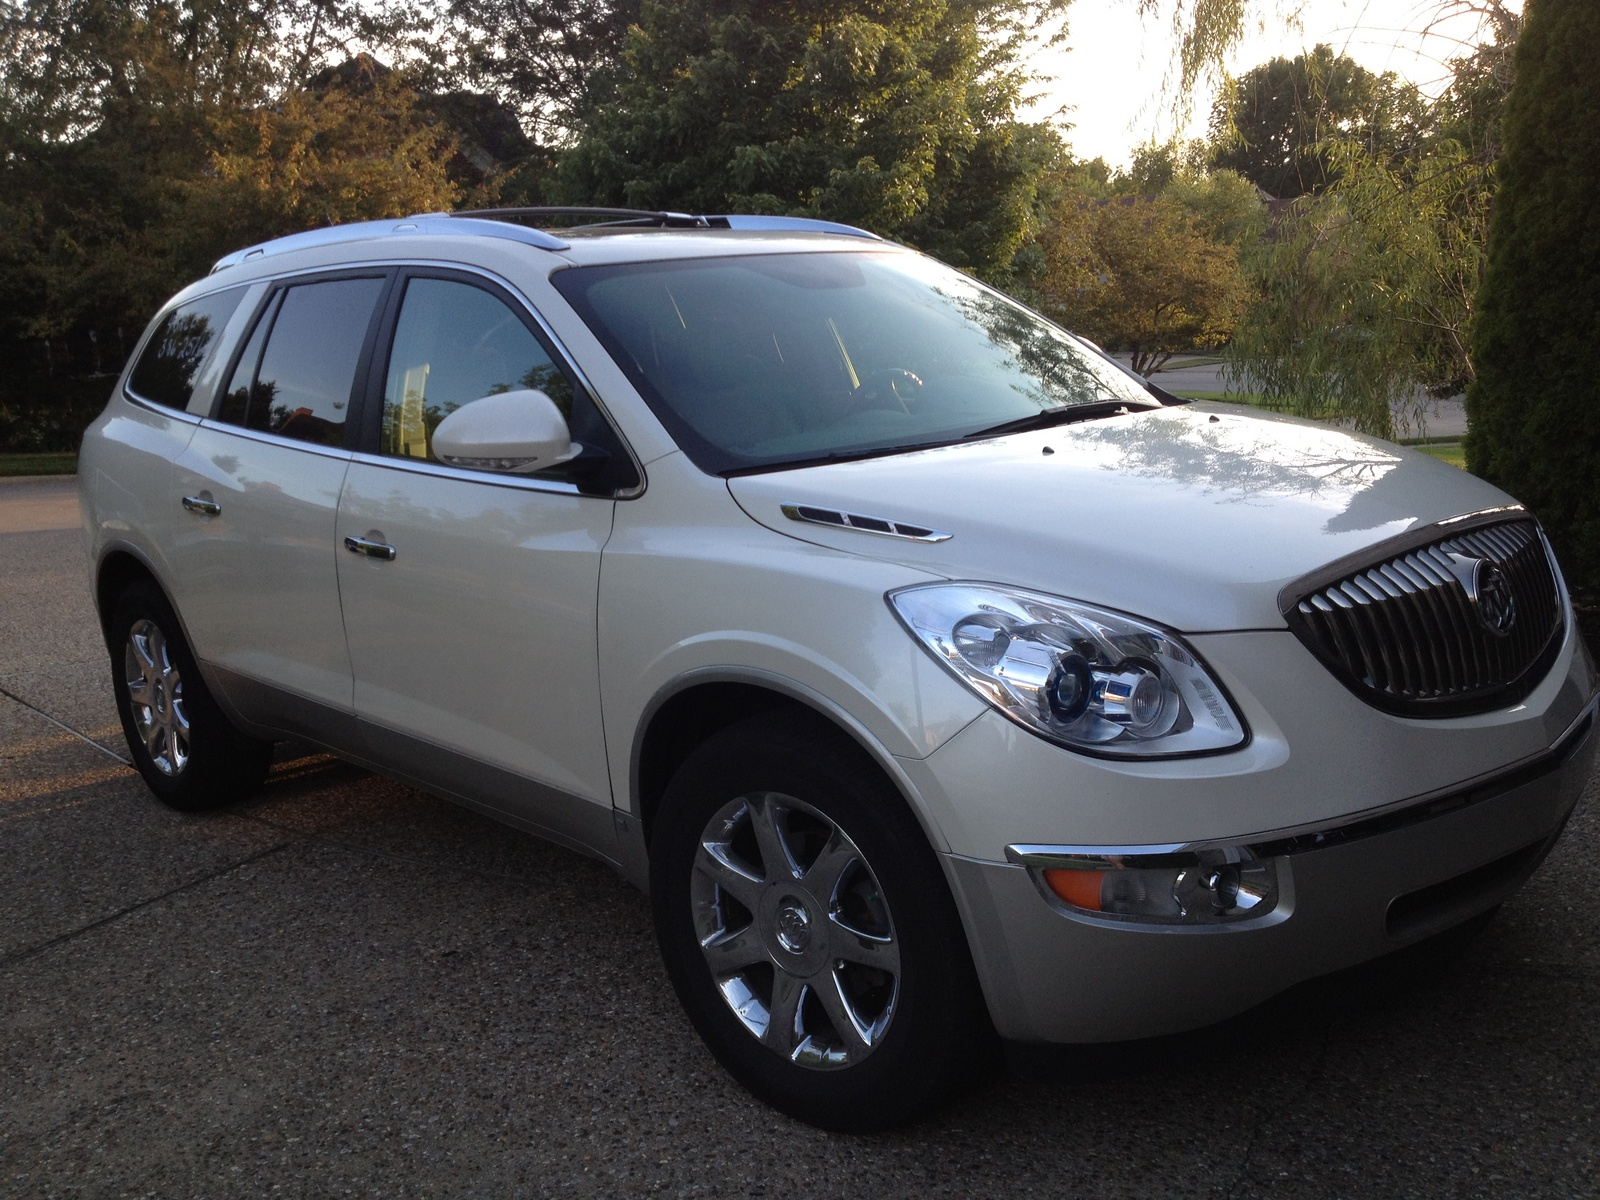 2008 buick enclave review ratings specs prices and photos html autos weblog. Black Bedroom Furniture Sets. Home Design Ideas